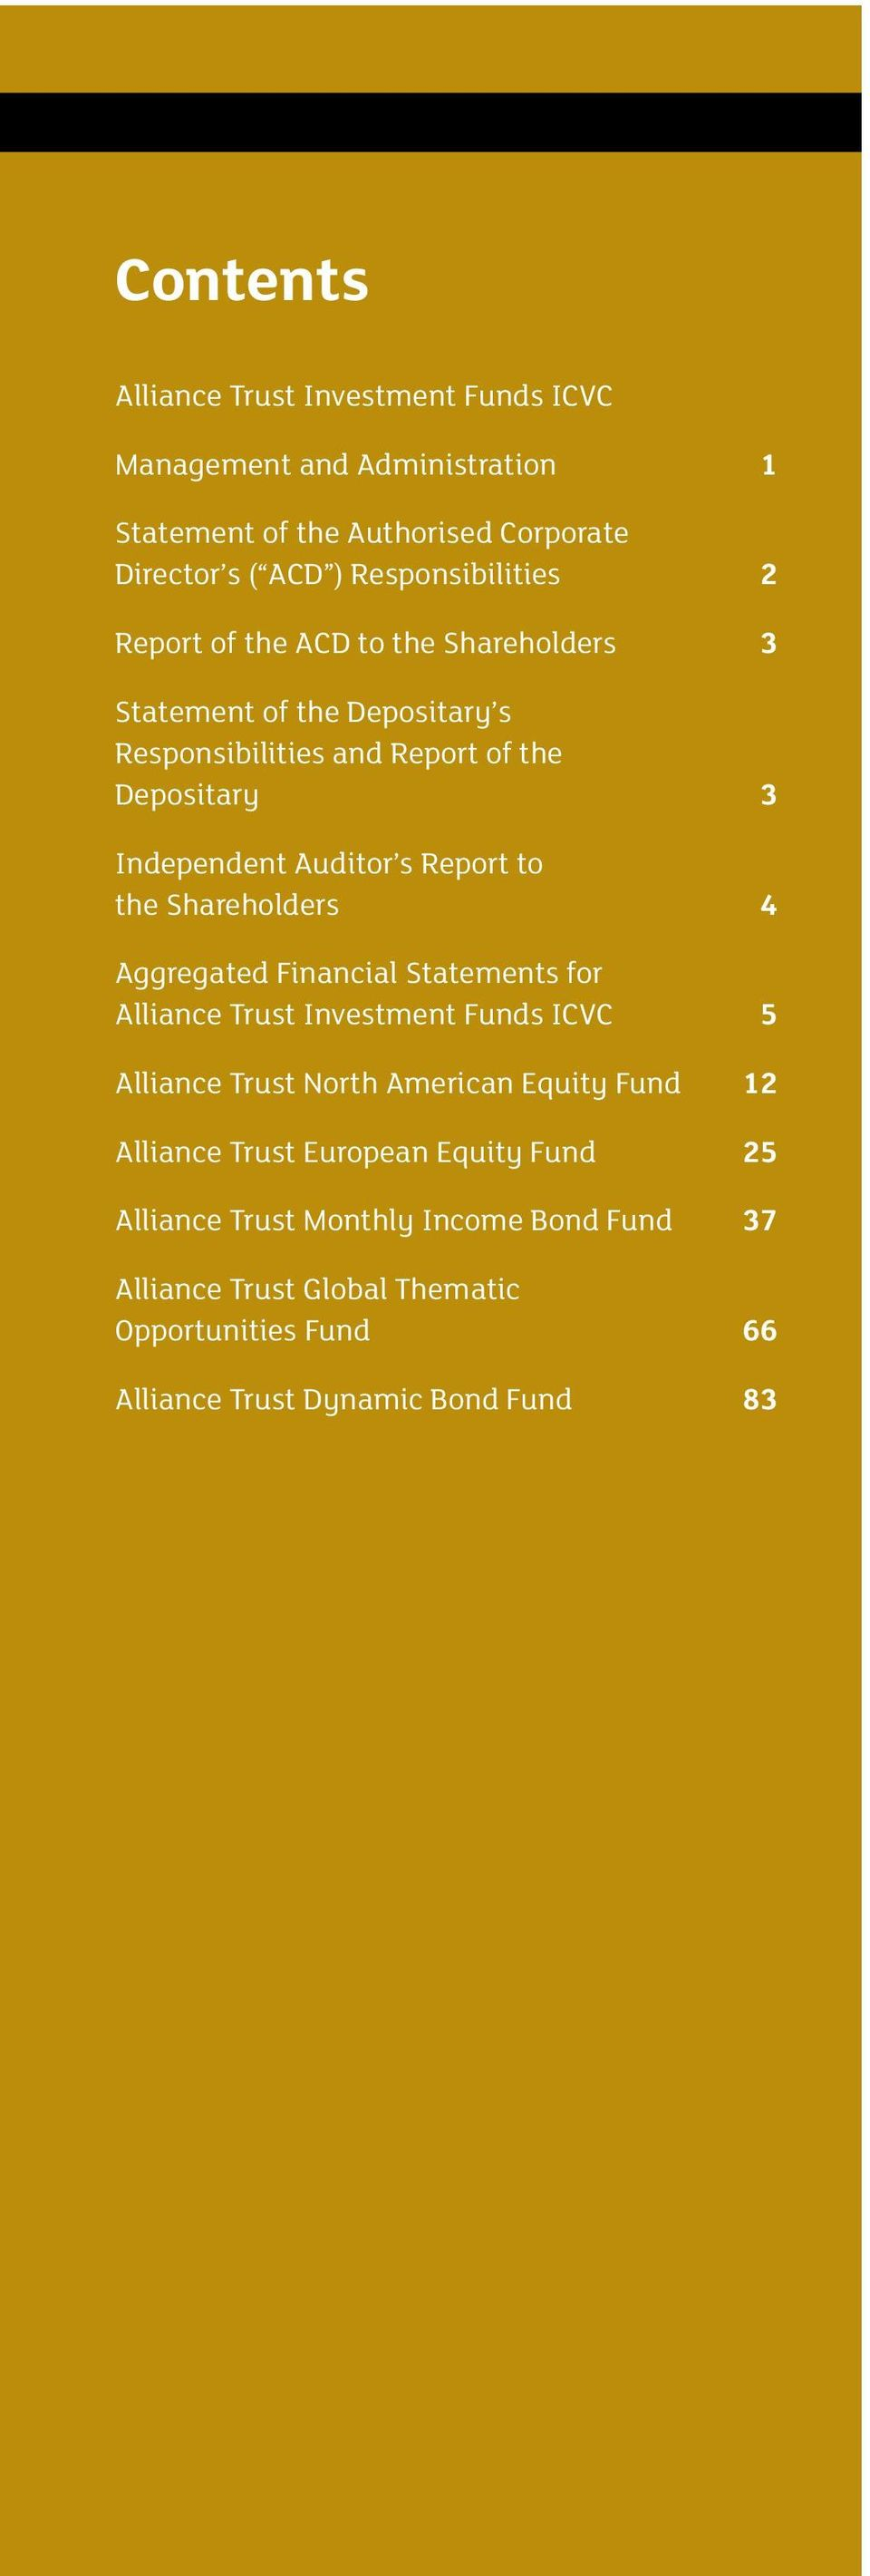 Shareholders 4 Aggregated Financial Statements for Alliance Trust Investment Funds ICVC 5 Alliance Trust North American Equity Fund 12 Alliance Trust